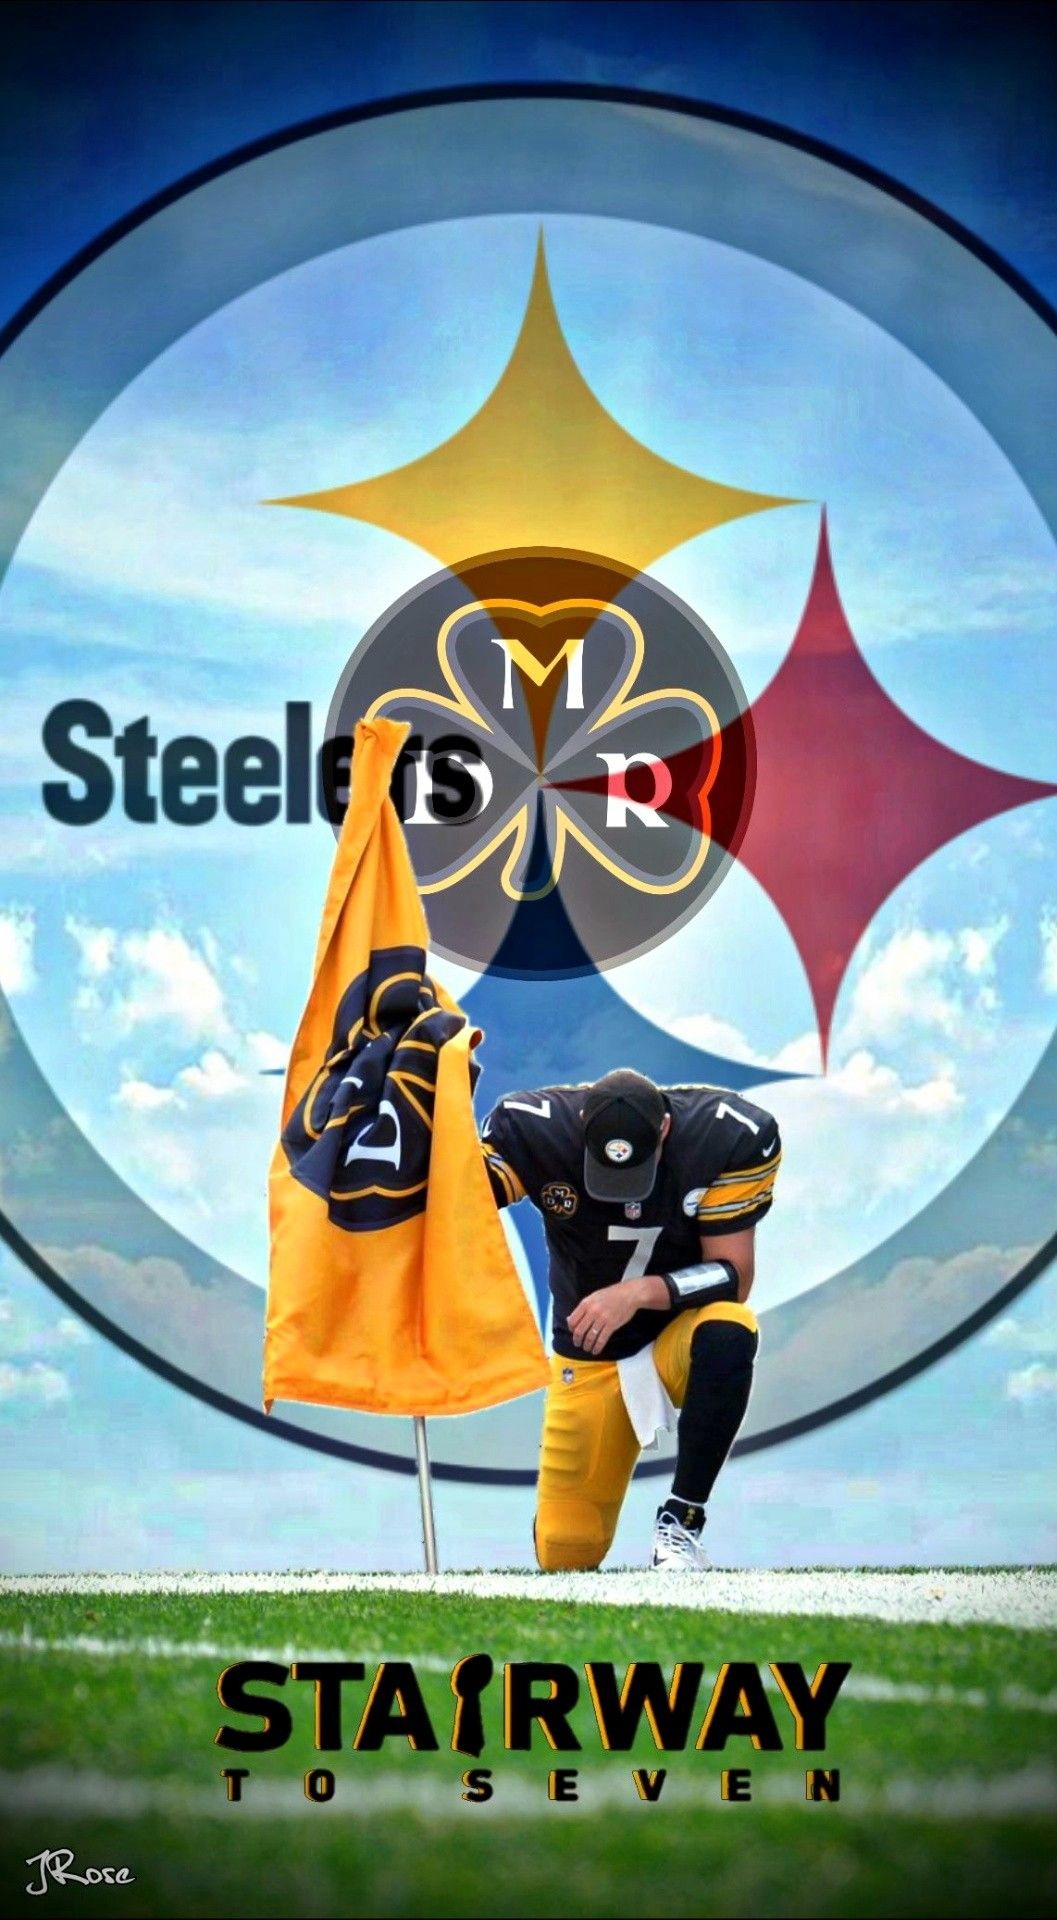 20182019 our year! Steelers Pittsburgh steelers